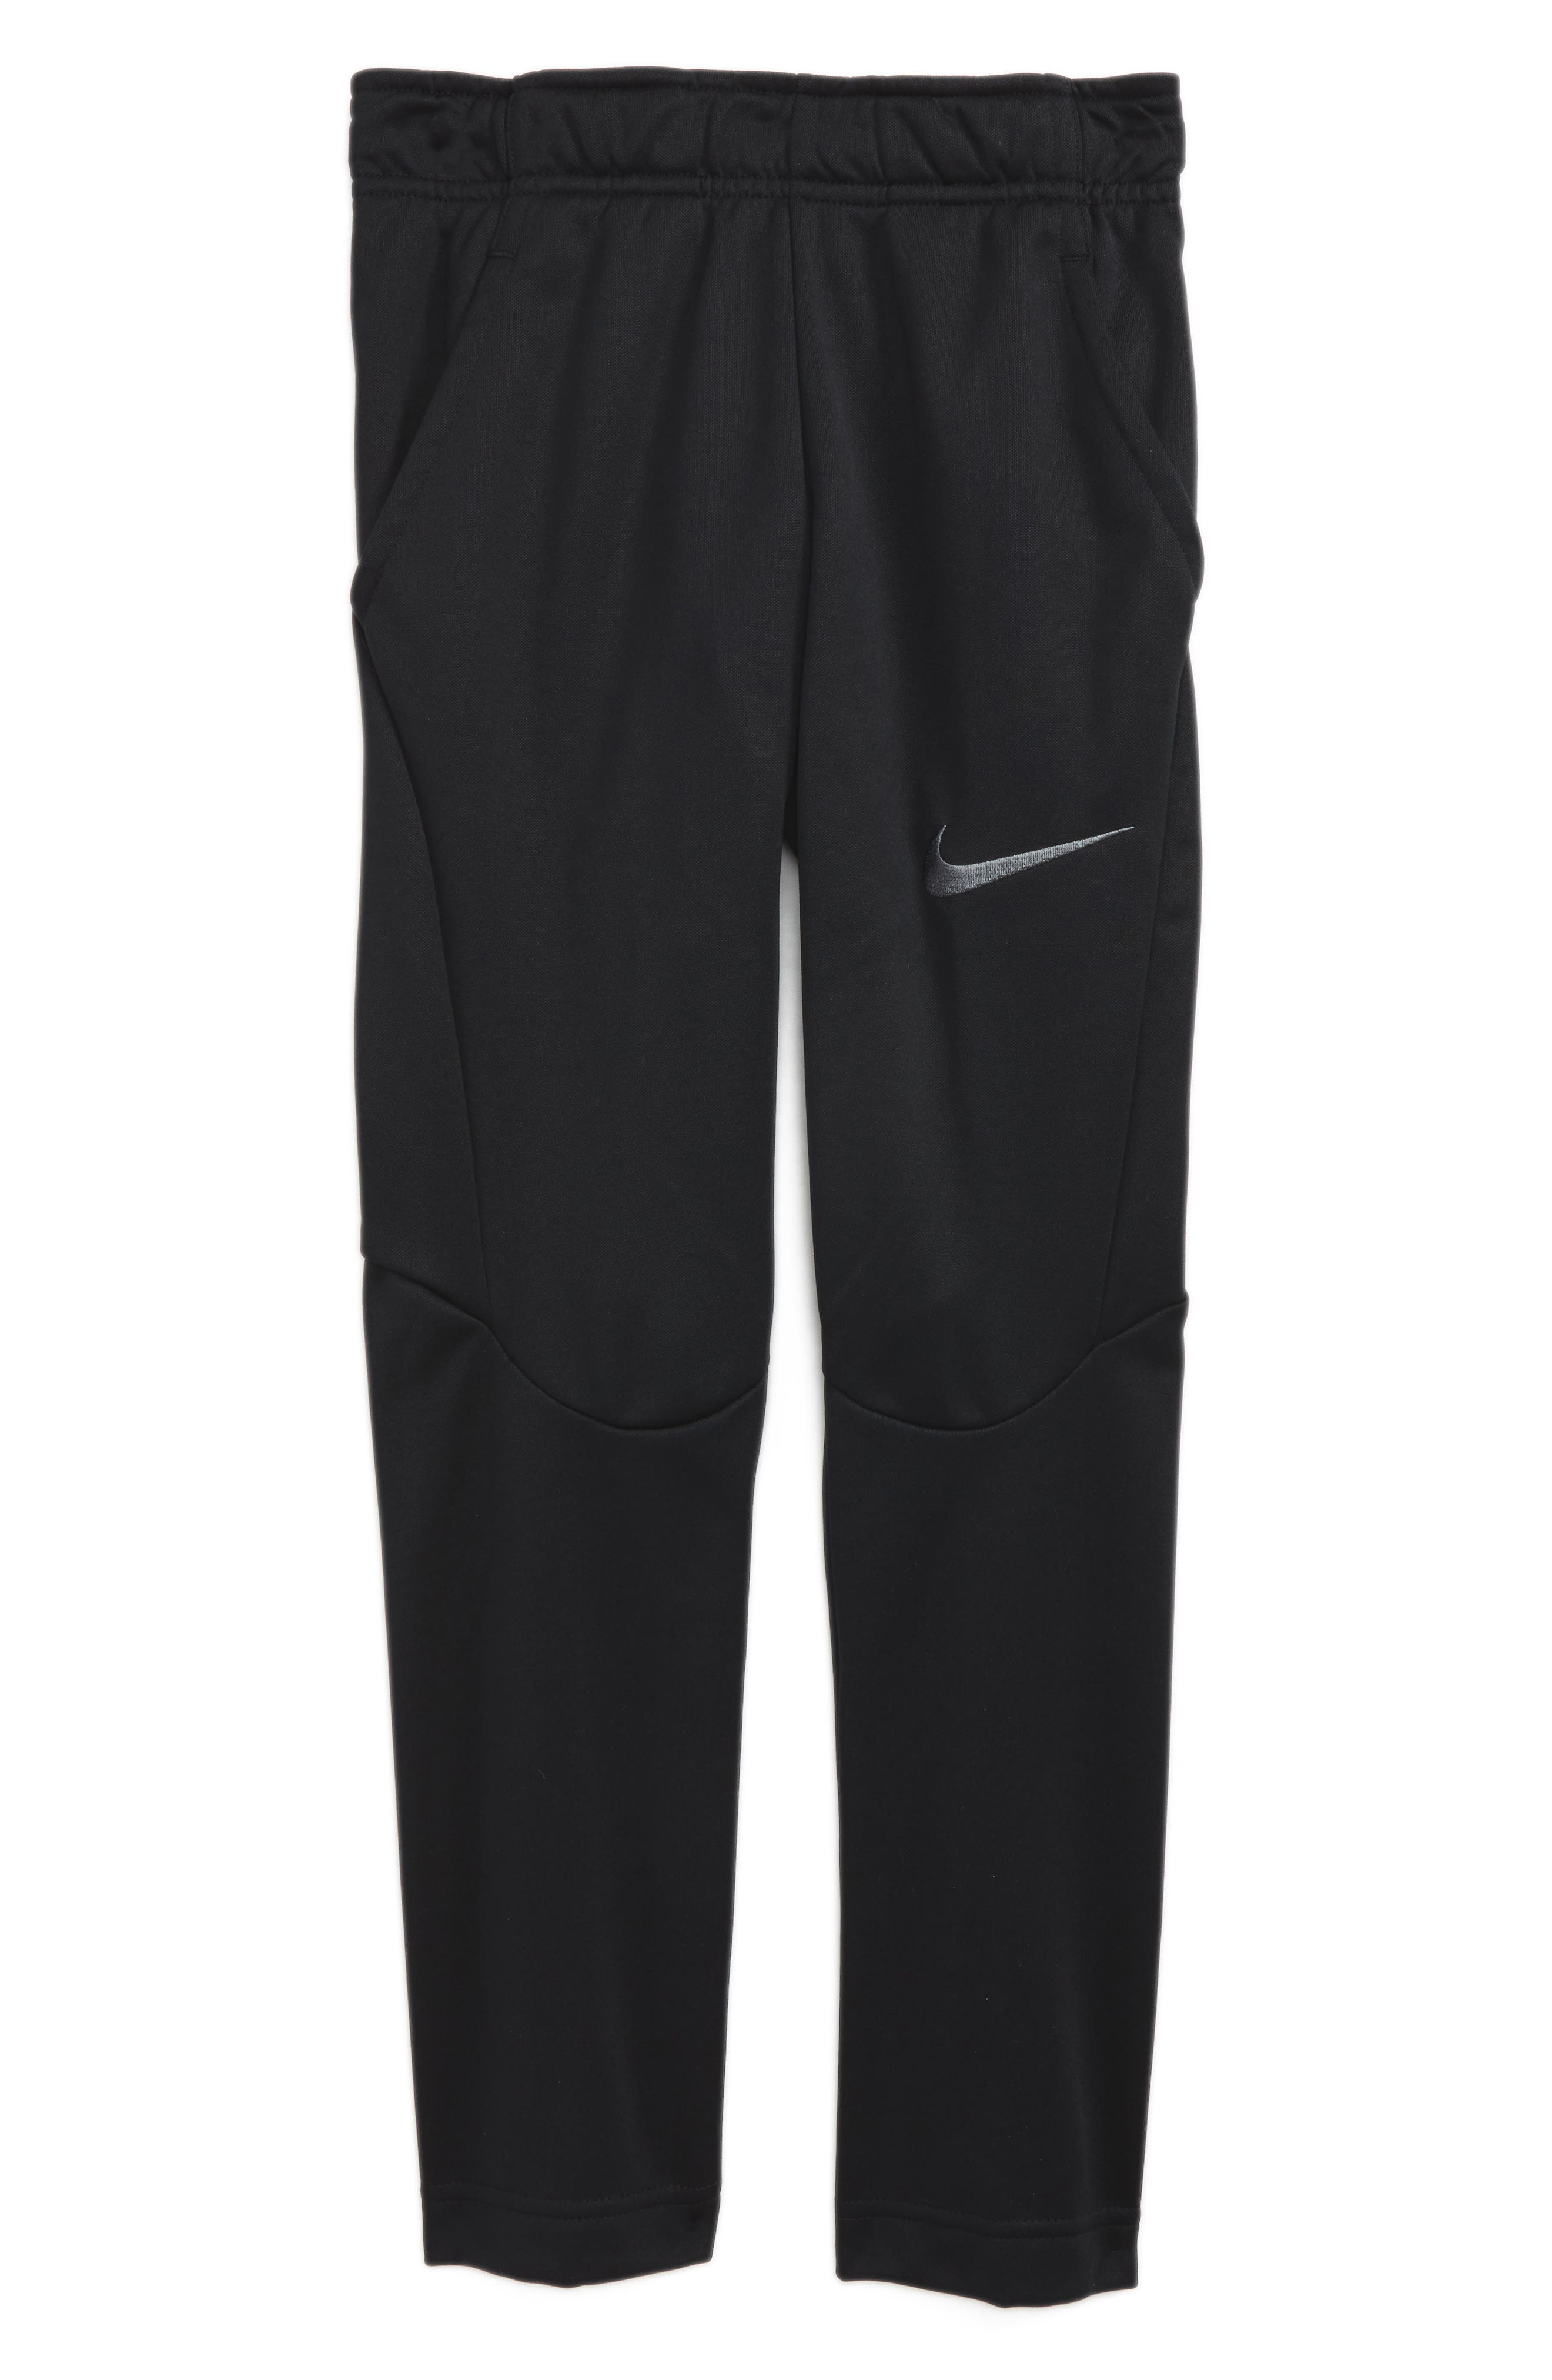 Therma-FIT Training Pants,                         Main,                         color, Black